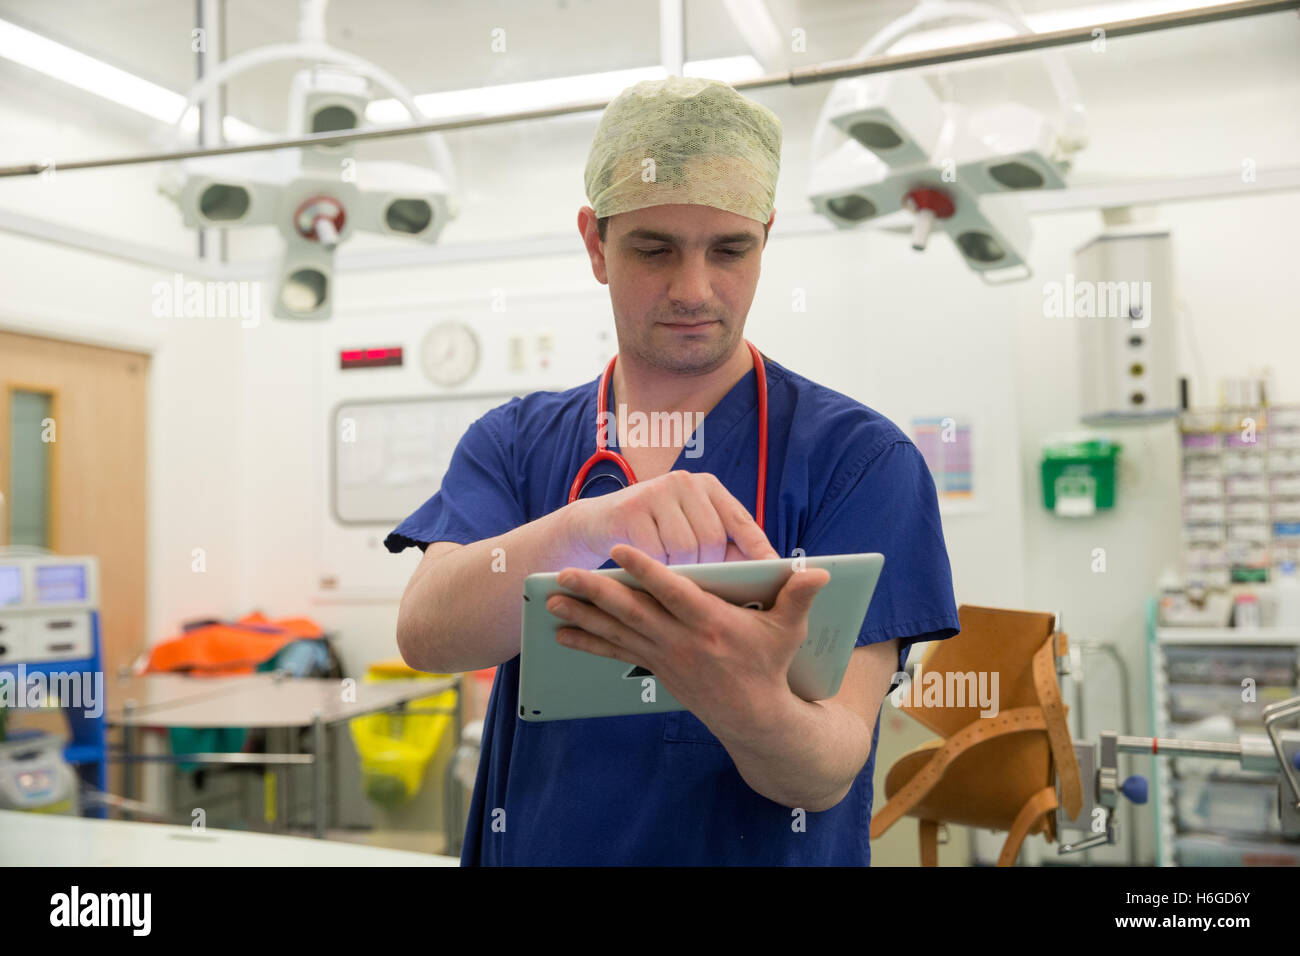 A surgeon in a hospital operating theatre checks the patients' notes on his Ipad prior to an operation - Stock Image